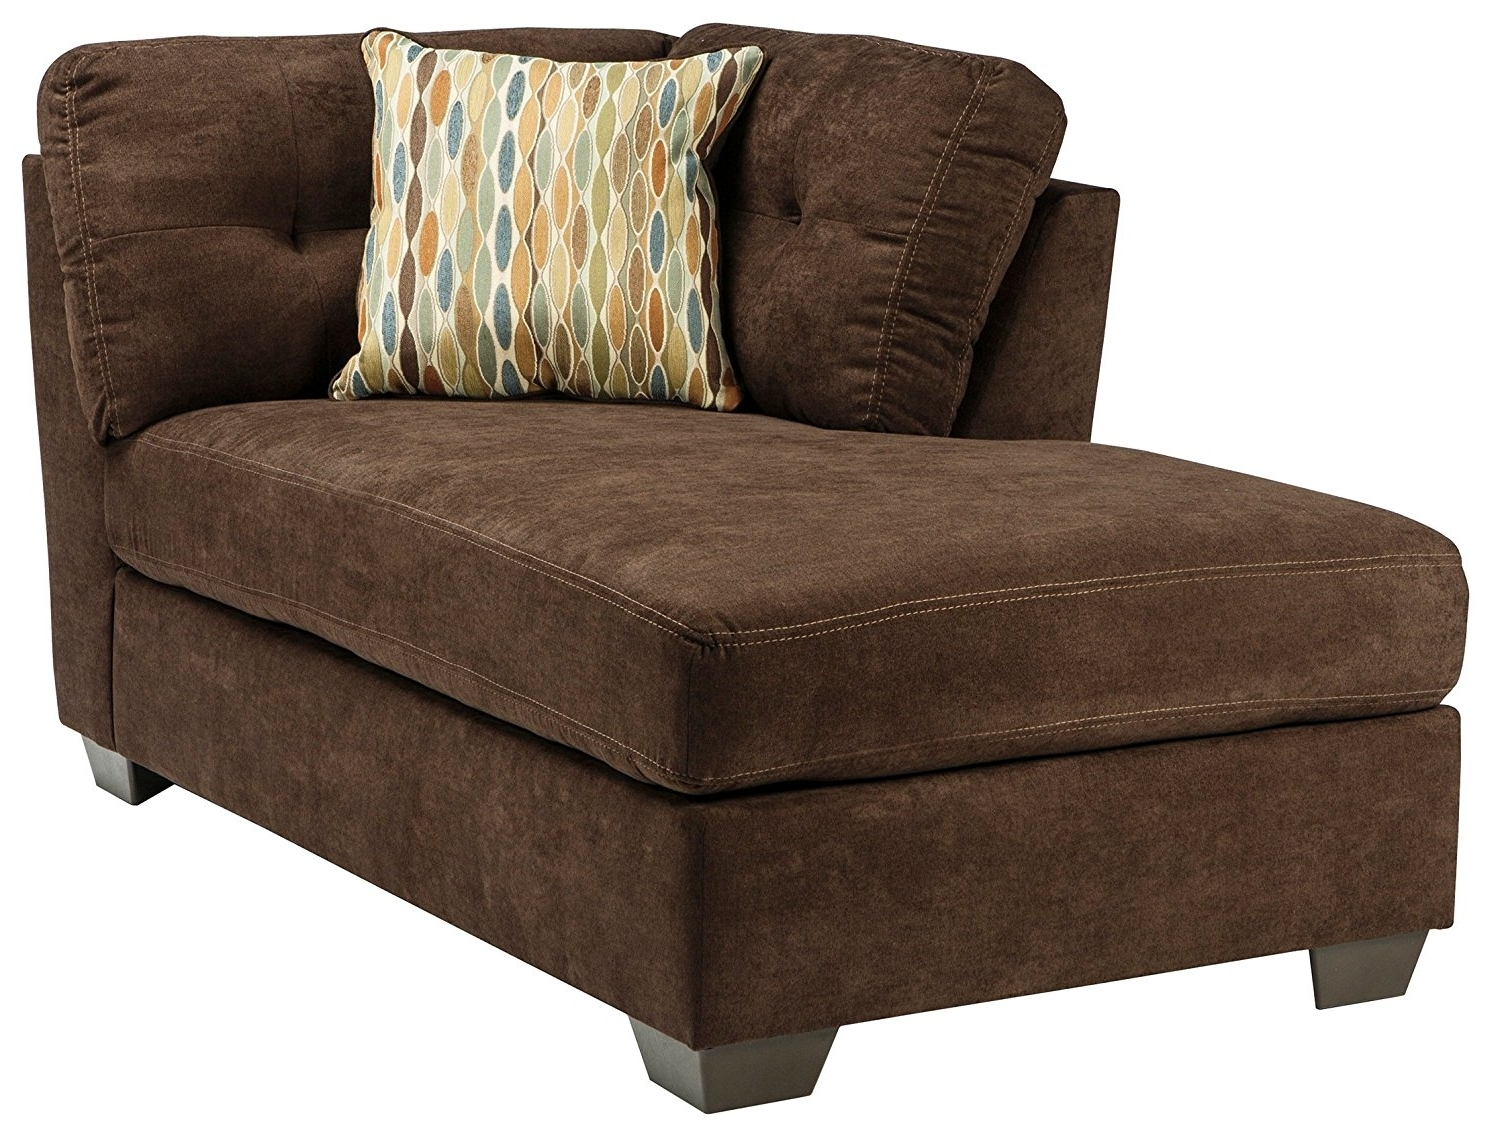 Ashley Chaise Lounges In Preferred Amazon: Ashley Delta City Left Corner Chaise Lounge In (View 1 of 15)